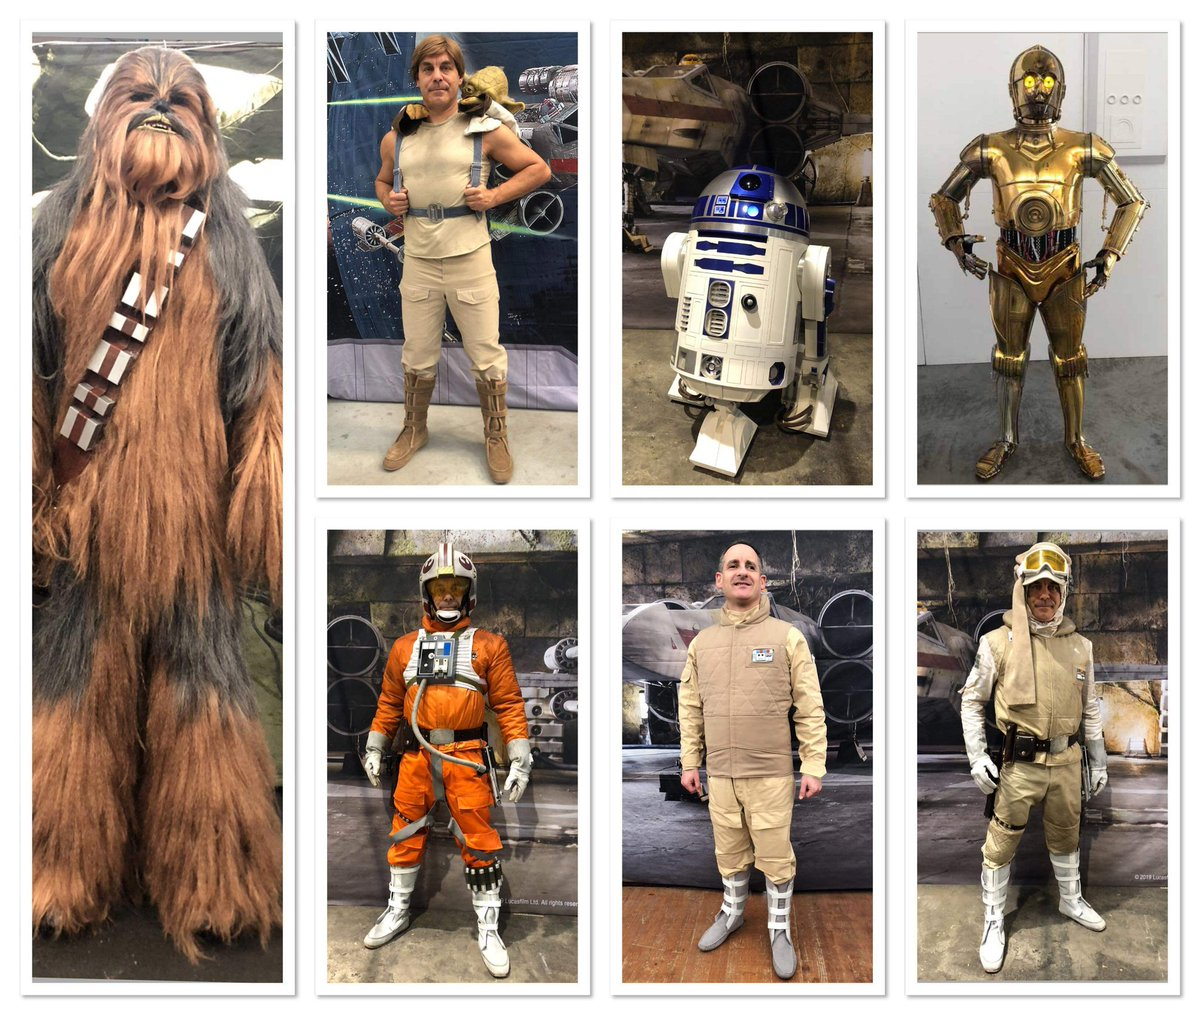 🇬🇧 This year we are celebrating 40 years of The Empire Strikes Back! If you were to make a costume for this episode, which one would you choose? 😉  #starwars #rebellegionfrenchbase #rebellegion #lempirecontreattaque #empirestrikesback https://t.co/yZkF1IG4gG